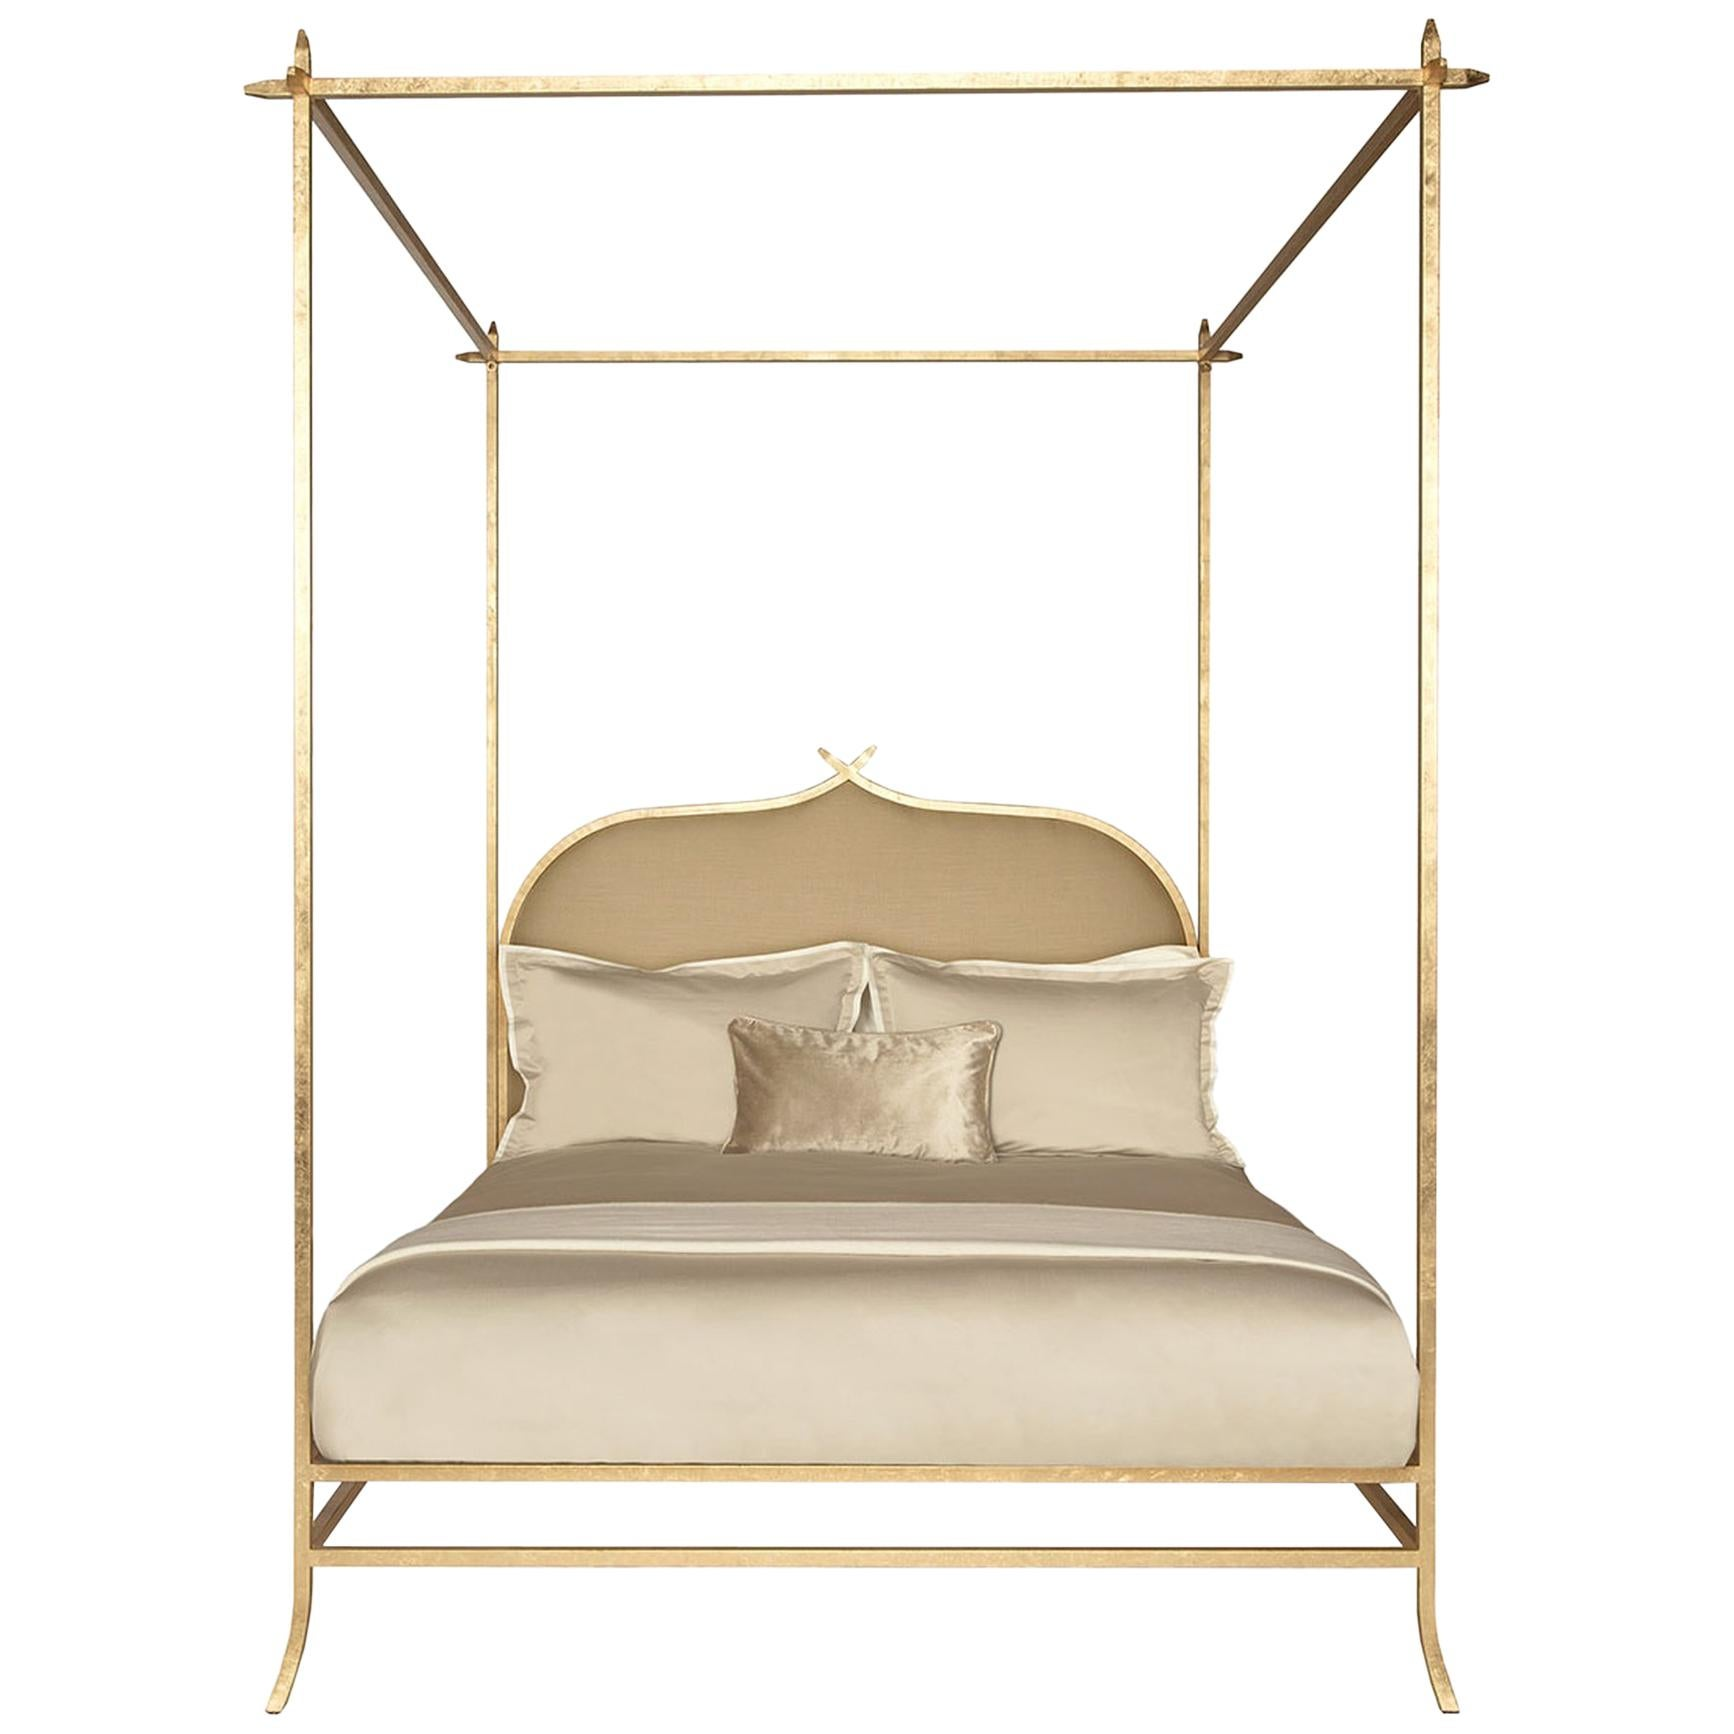 casablanca poster queen bed with gold leaf frame by innova luxuxy group